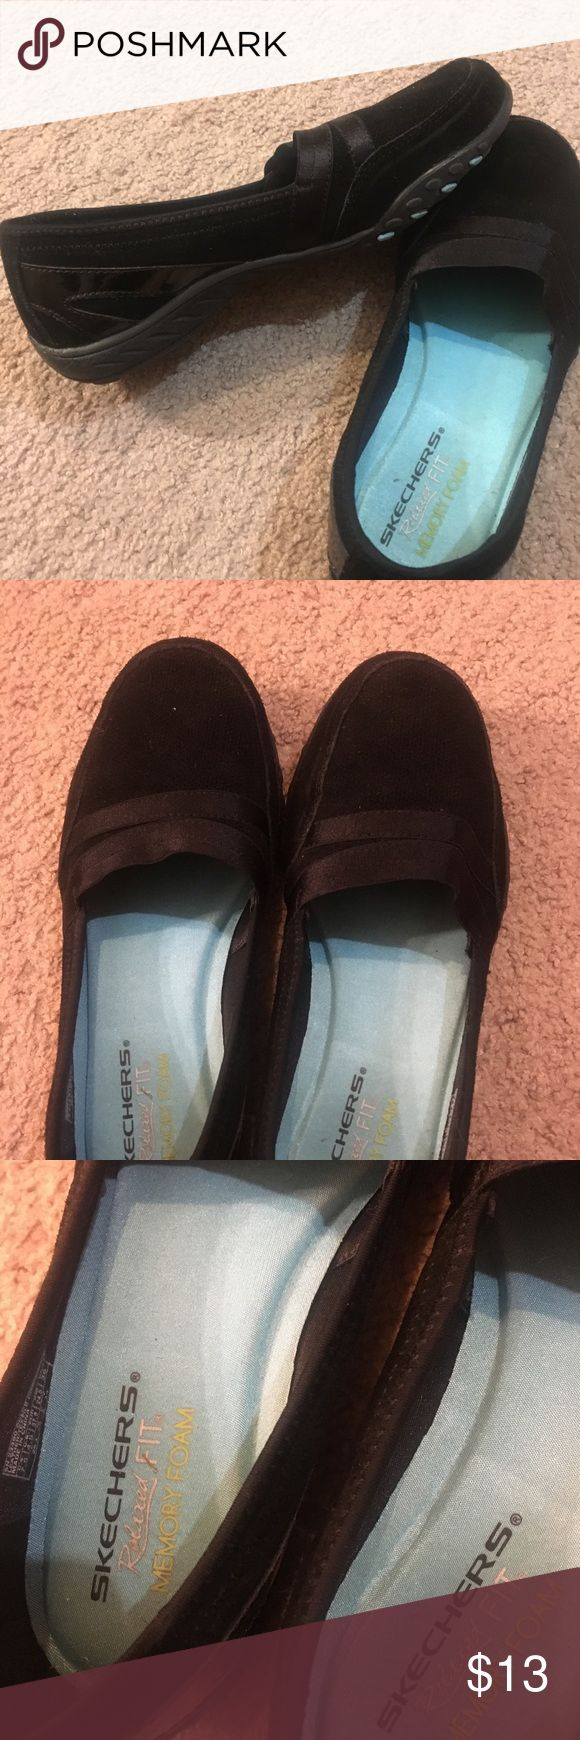 Shoes For Bunions Womens   Ee